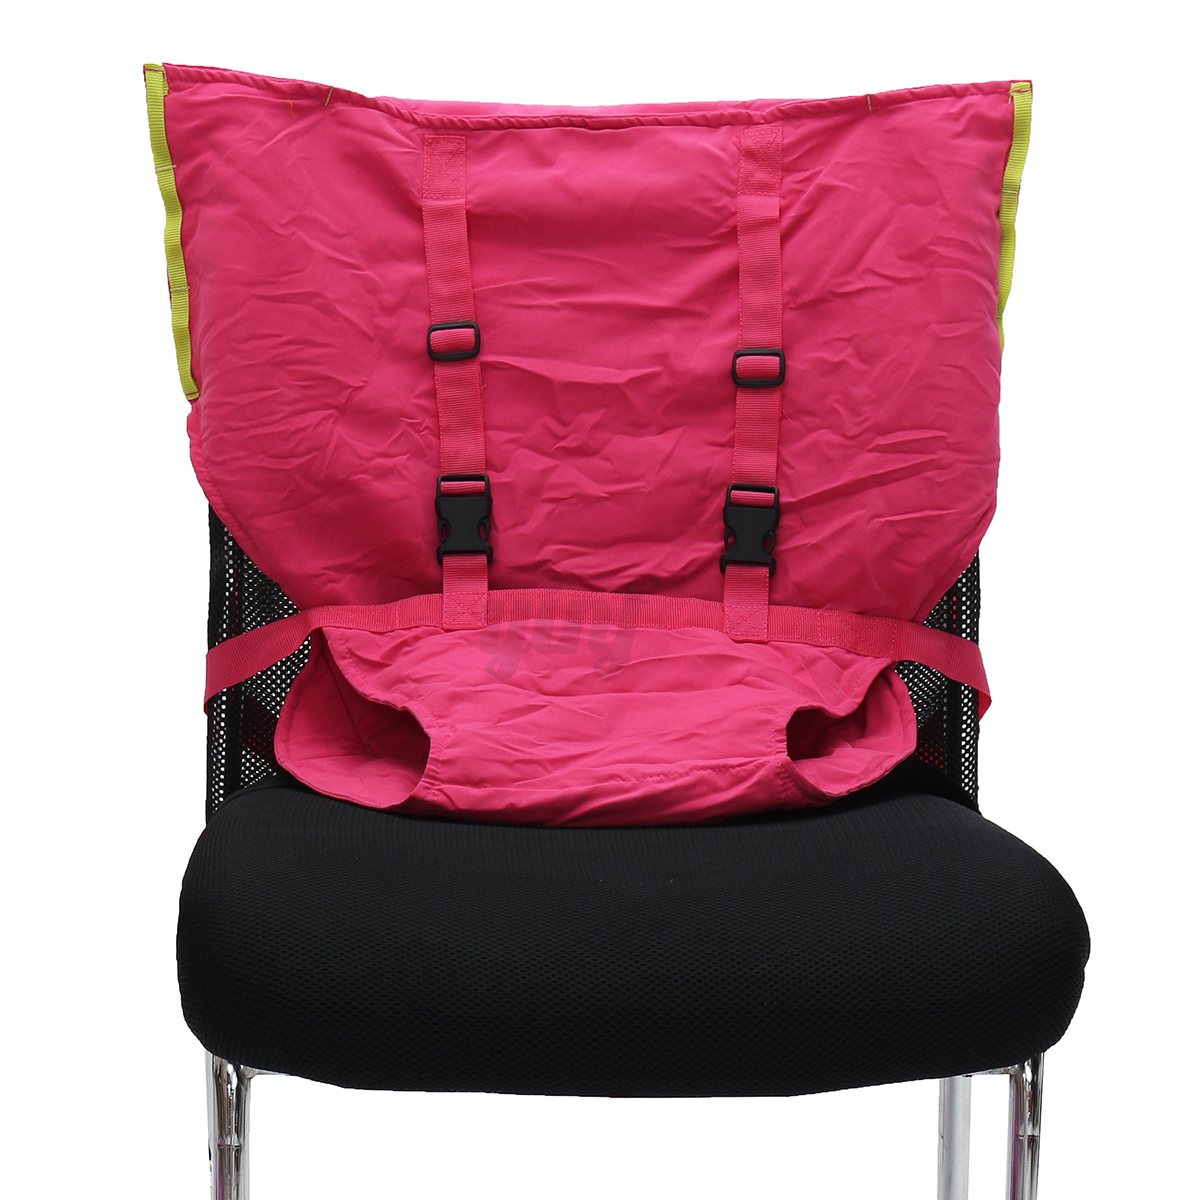 kids high chair cover rentals erie pa portable baby infant feeding harness seat